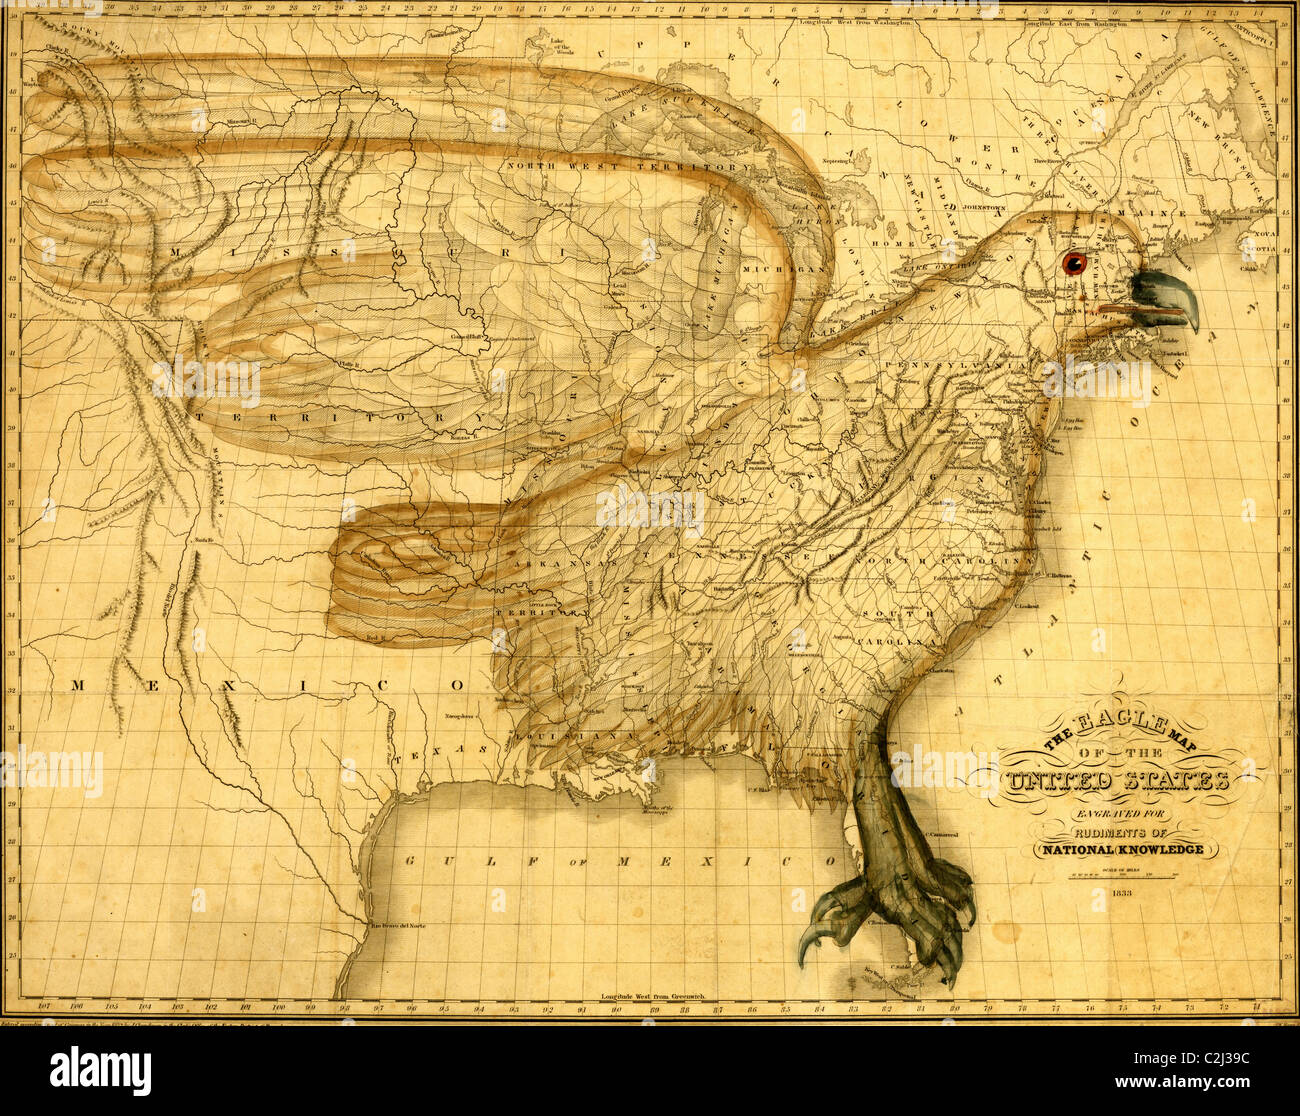 Eagle Map of the United States 1832 Stock Photo 36047800 Alamy